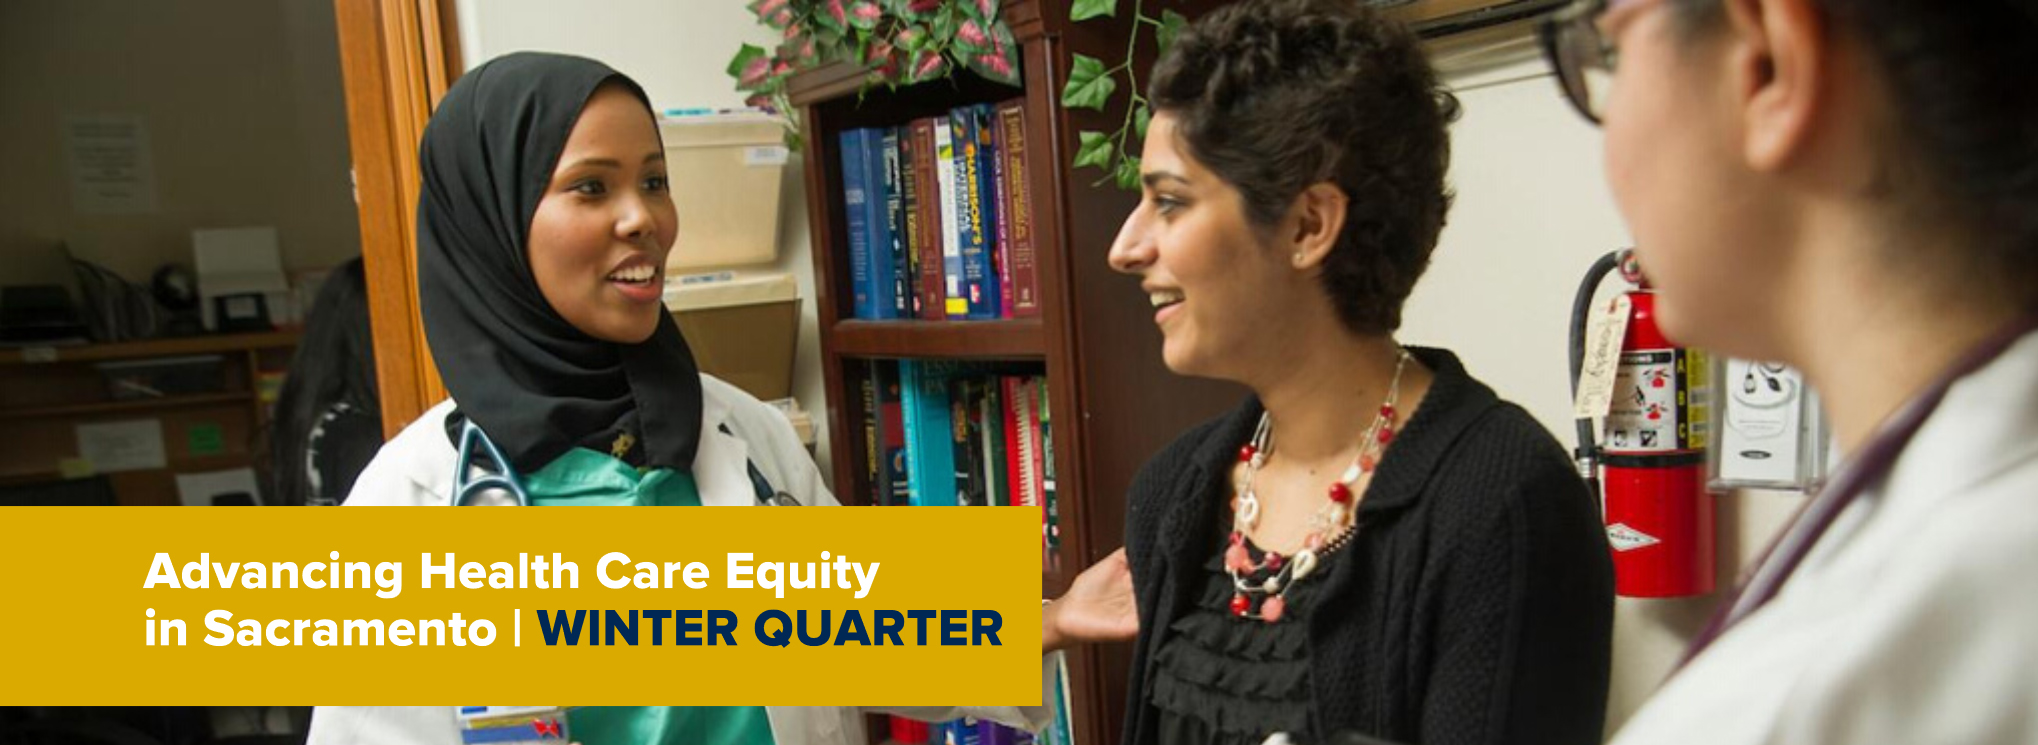 New Course Winter 2021: Advancing Health Care Equity Quarter at Aggie Square